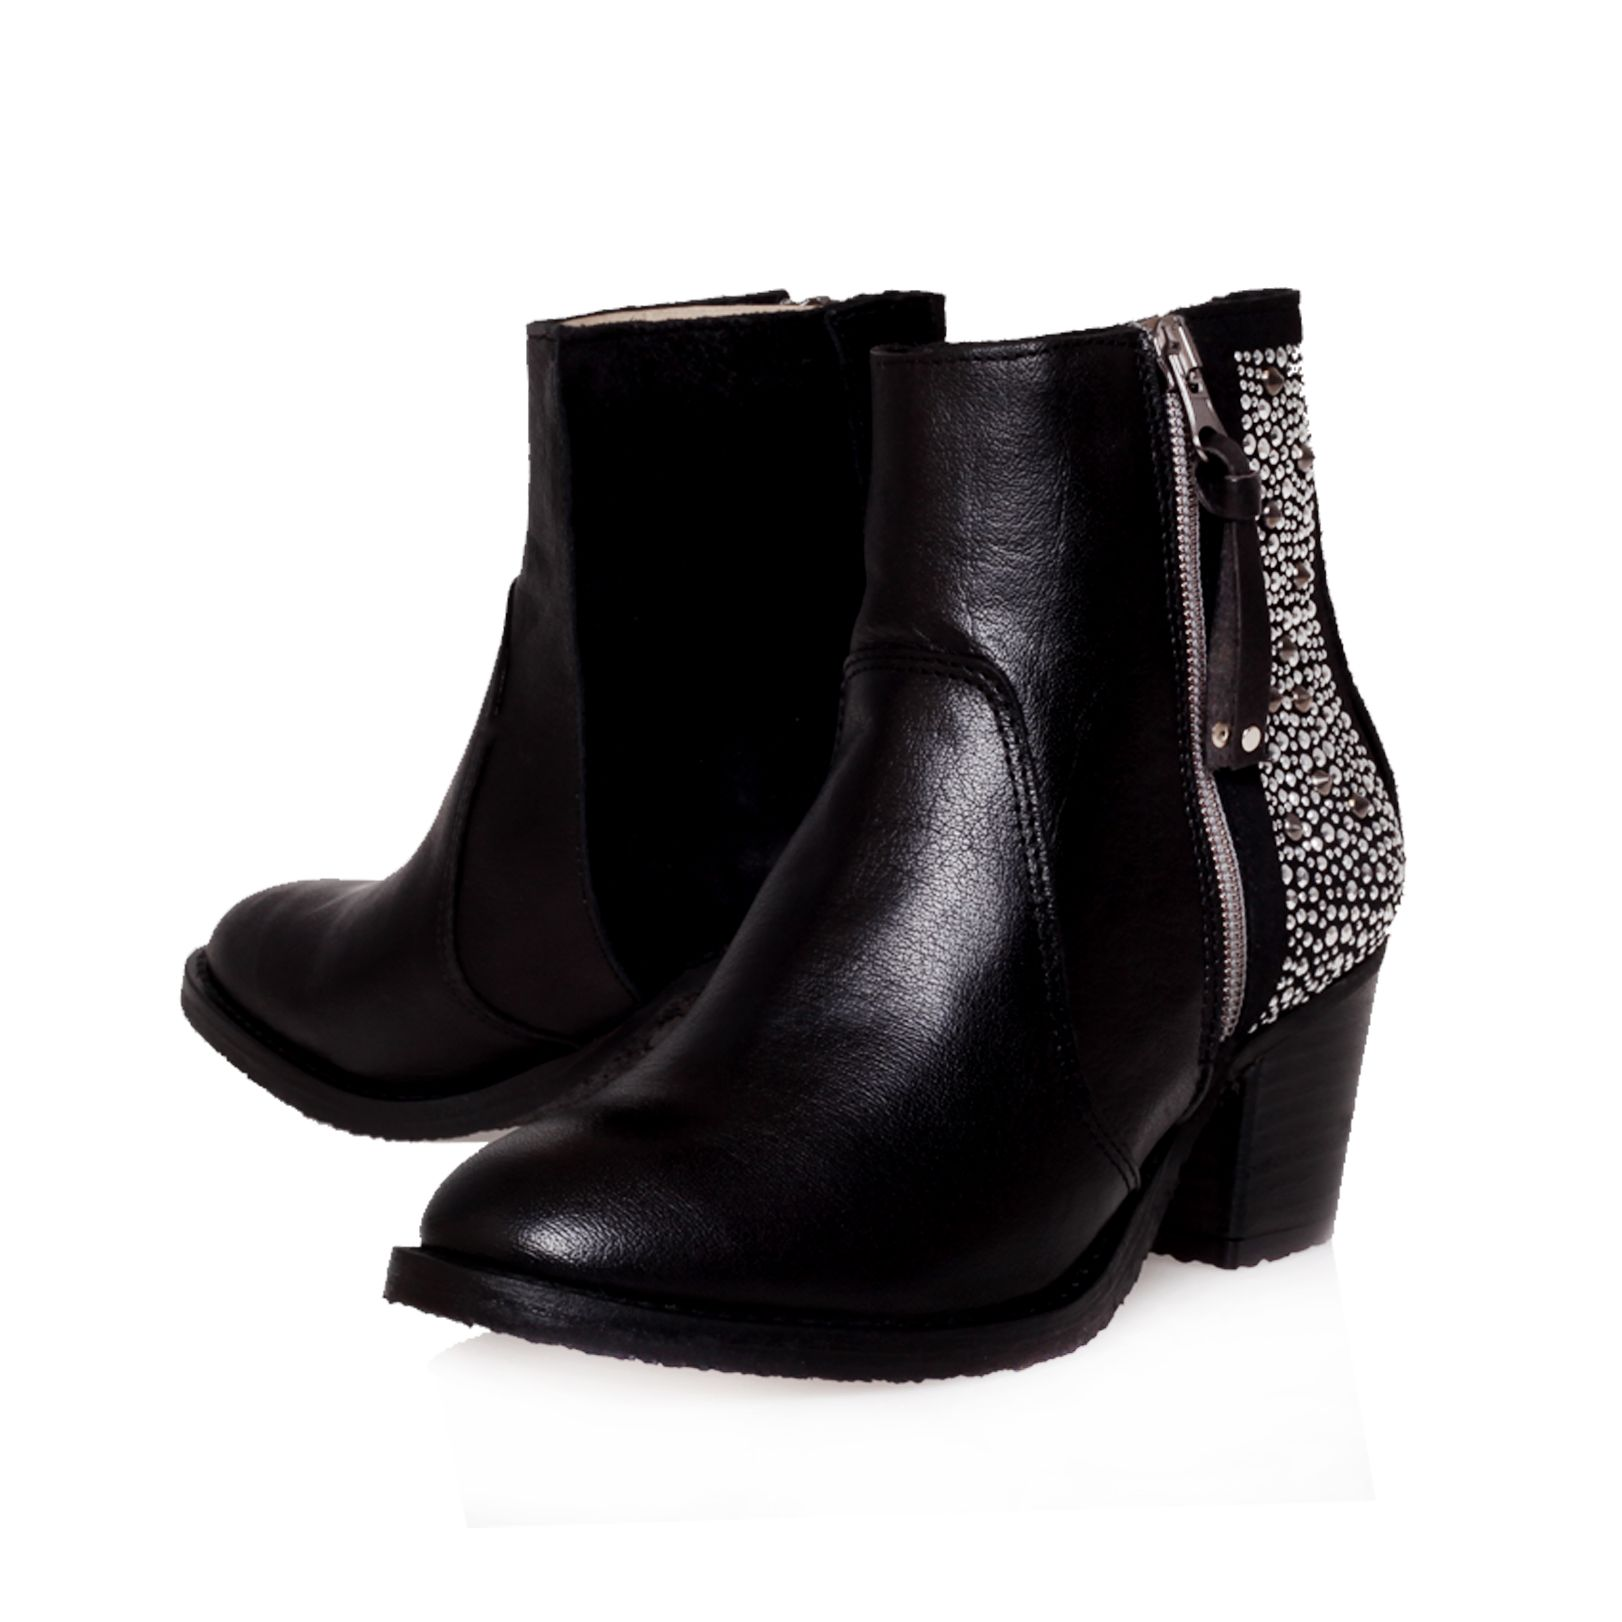 Shark leather ankle boots